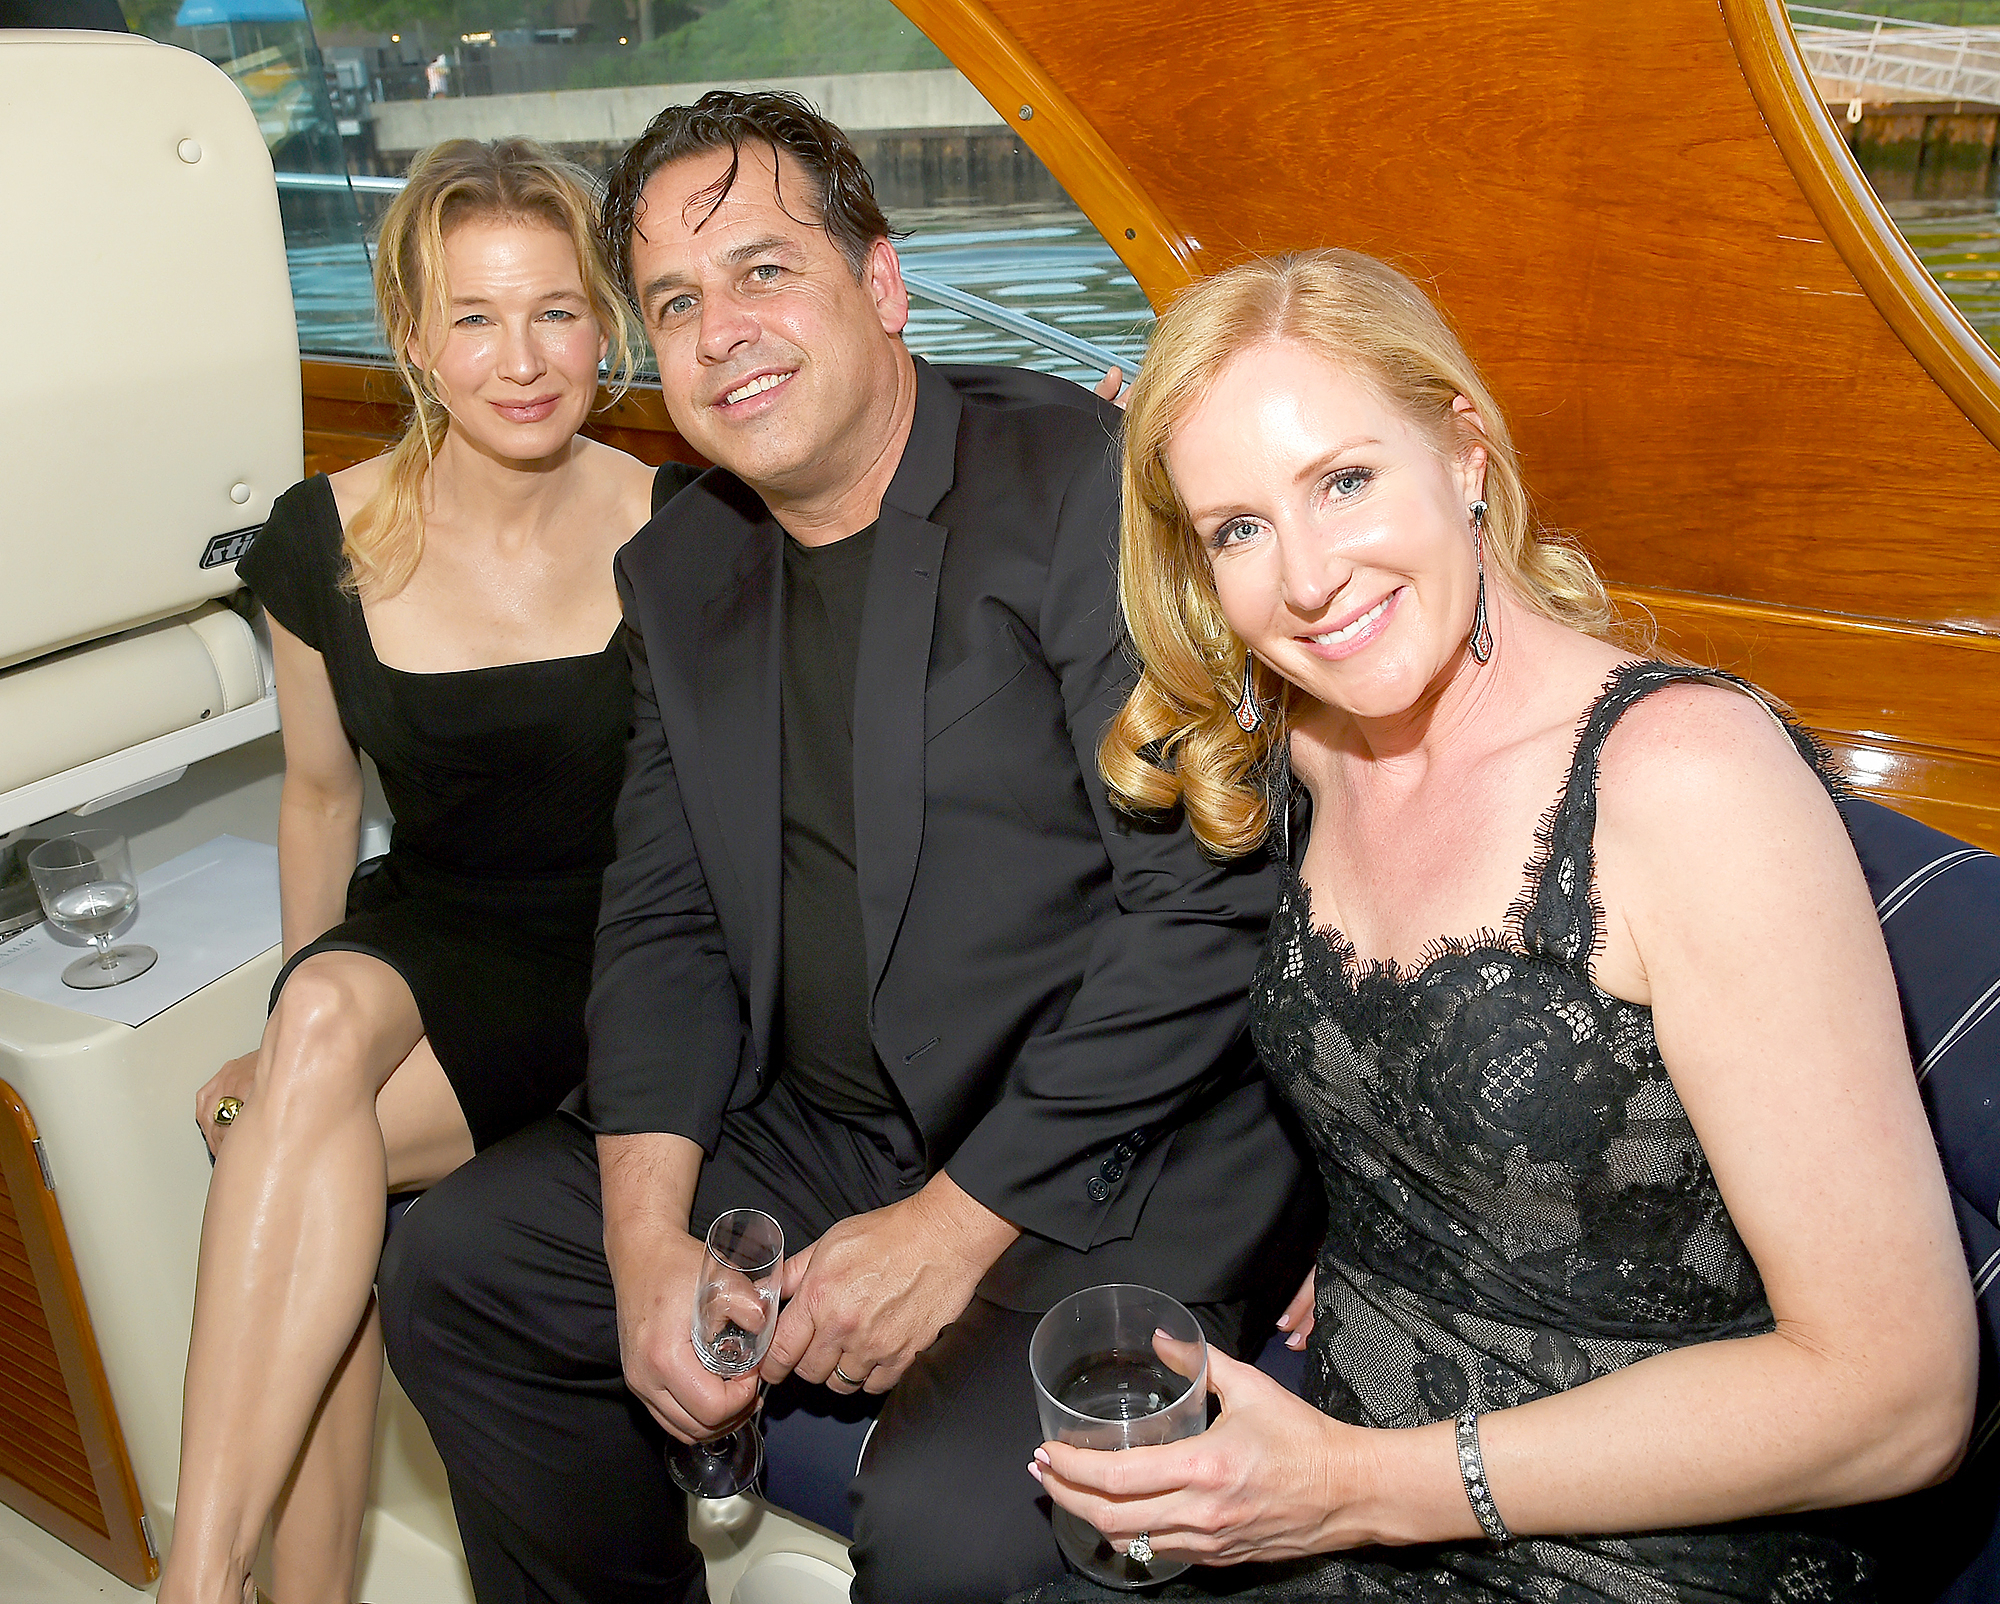 Renee Zellweger, Drew and Colleen deVeer